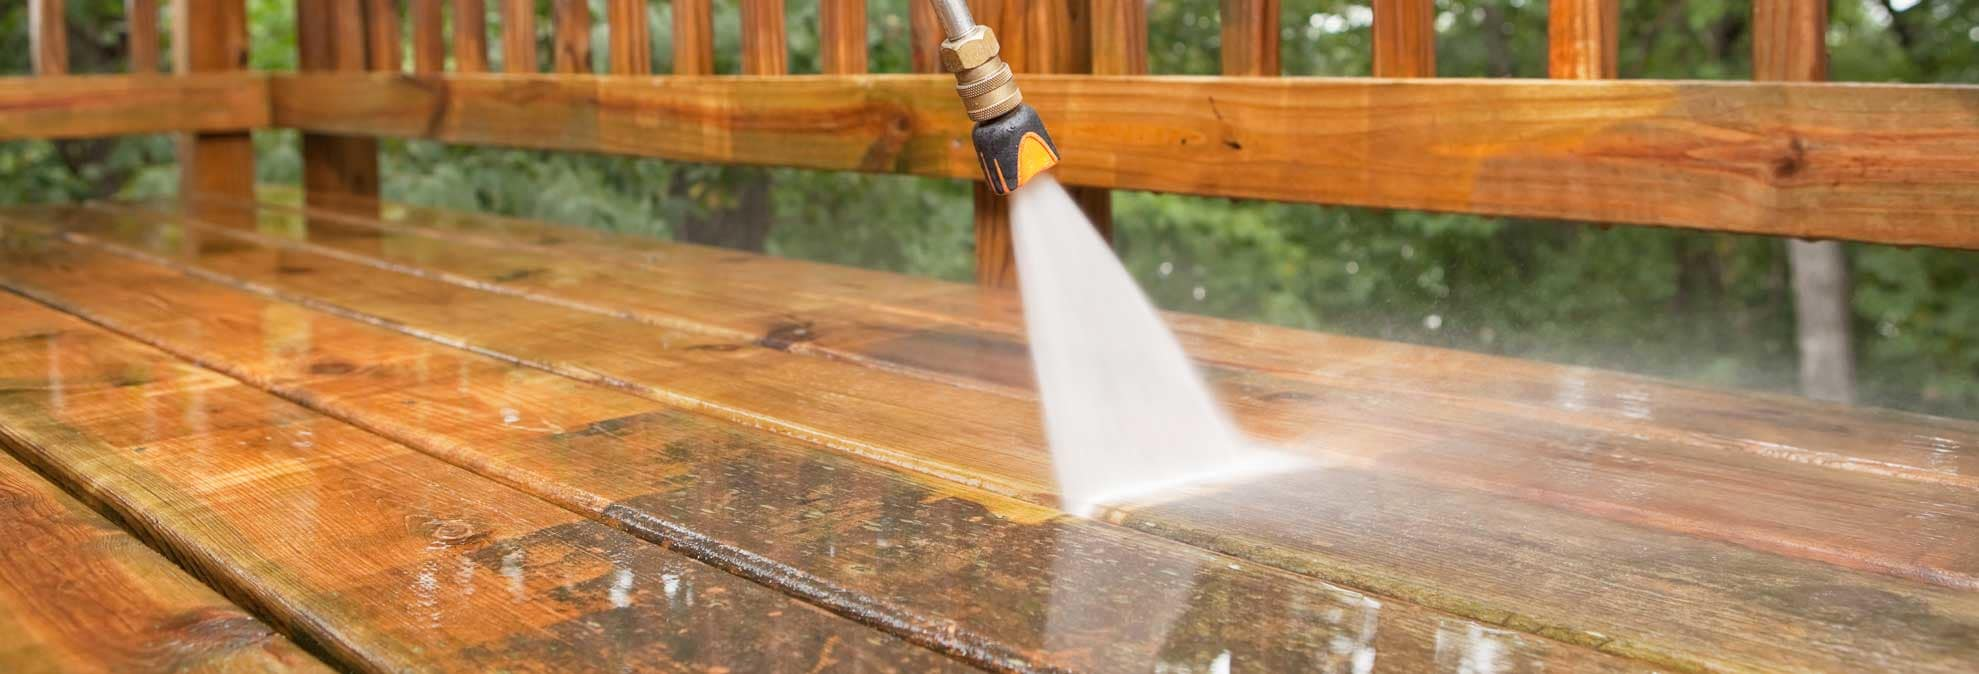 Gutter Cleaning Hampstead Nc